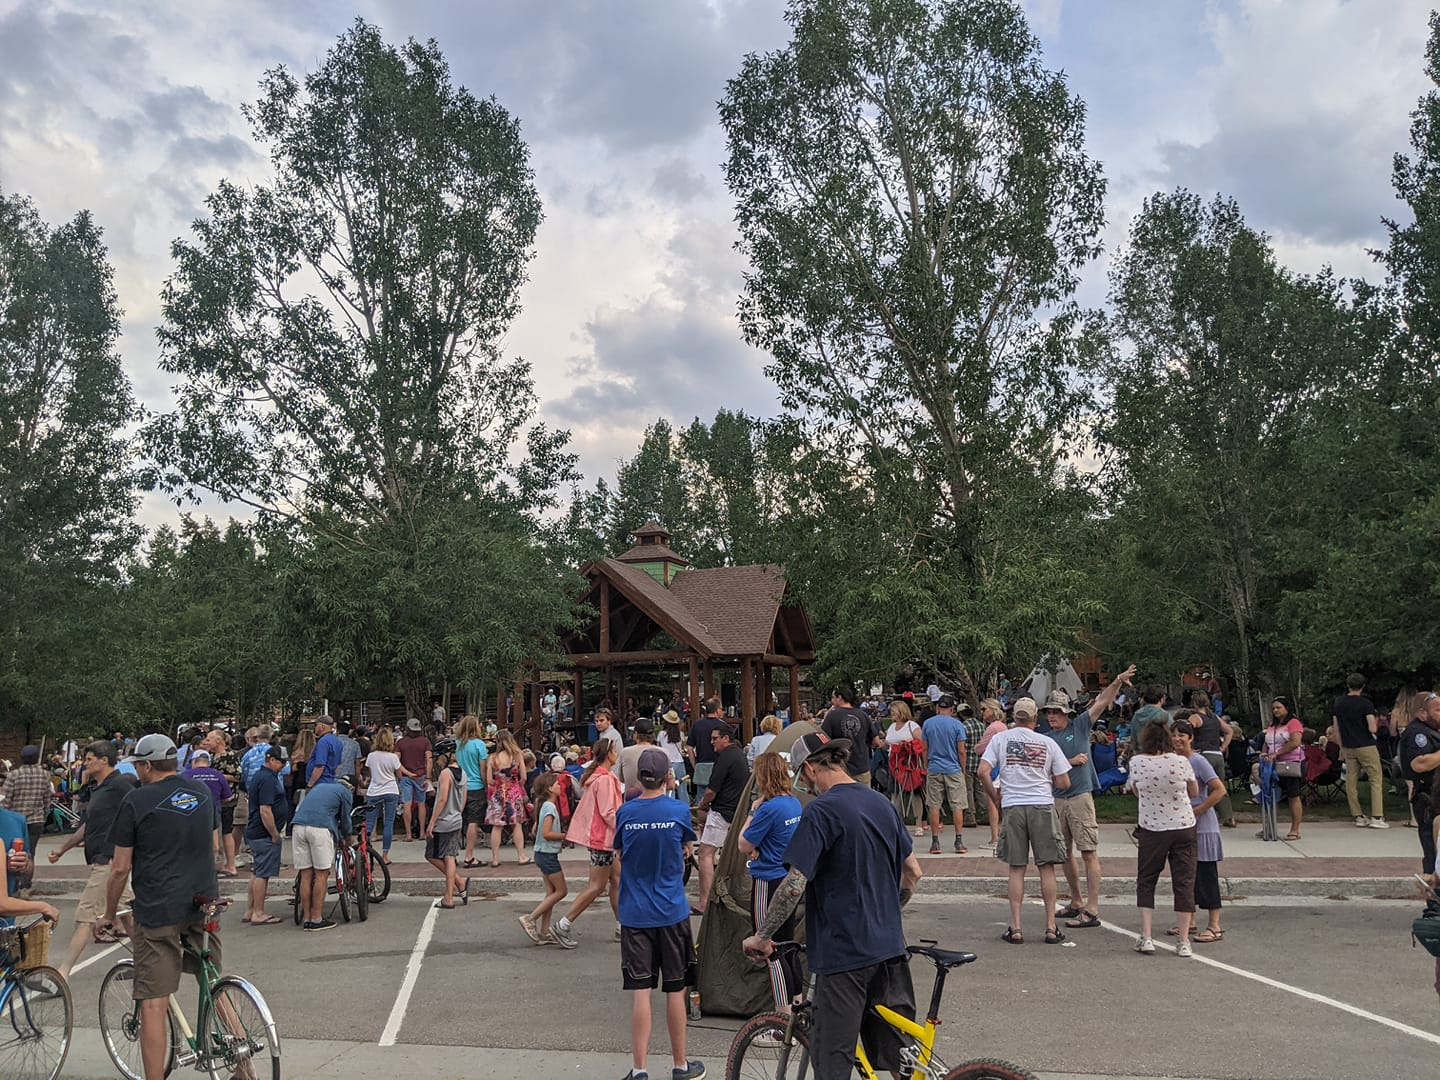 Image of people crowding together for the Concert in the Park in Frisco, Colorado